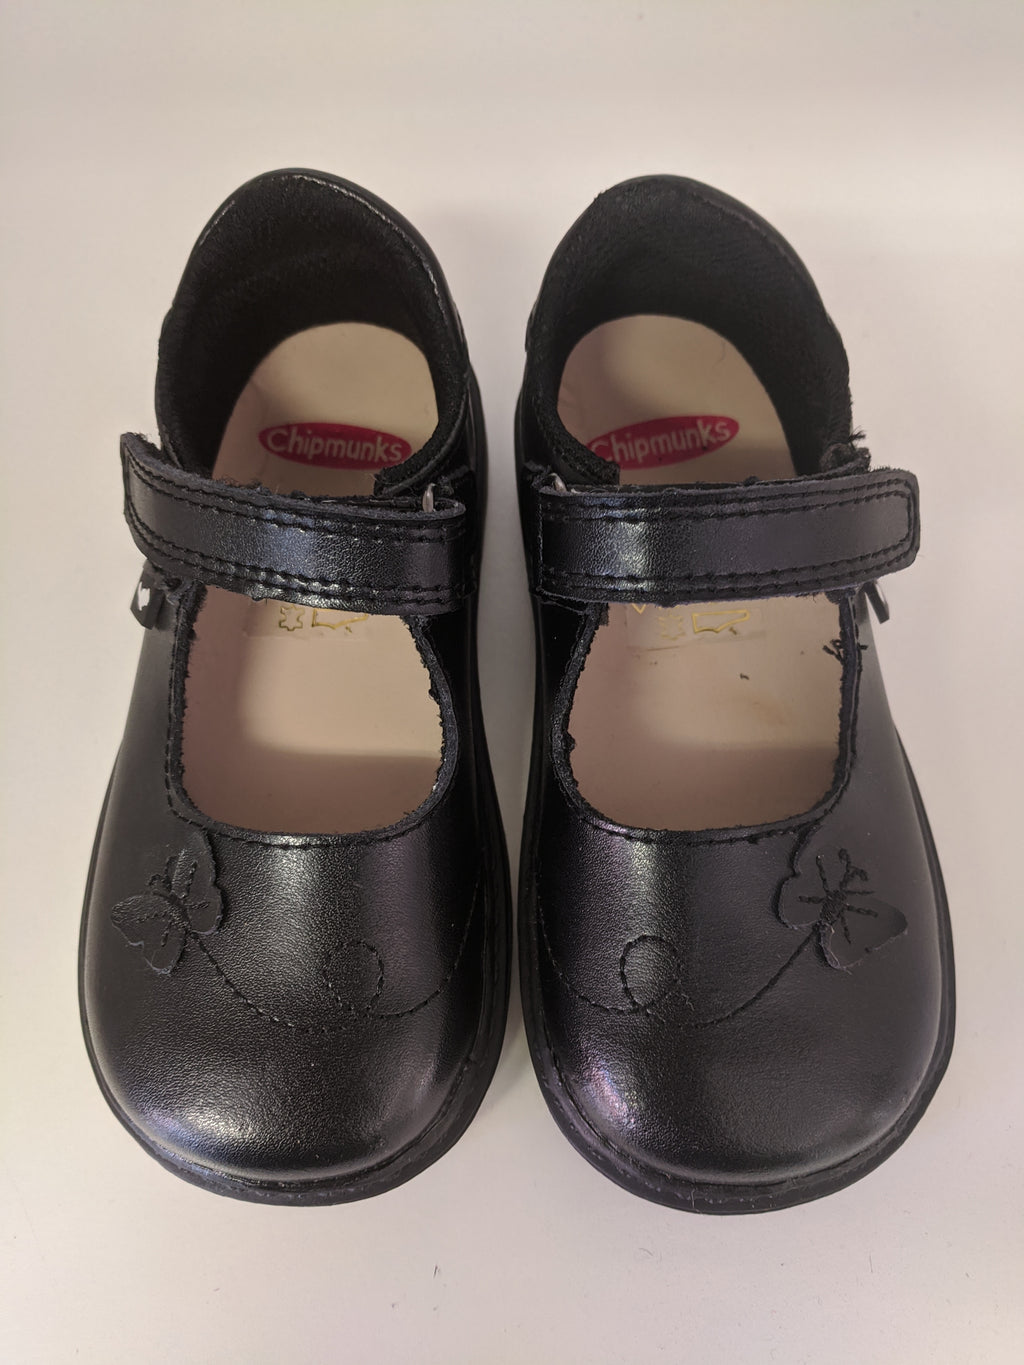 Chipmunks Paige Black School Shoes (code Jan 2021)